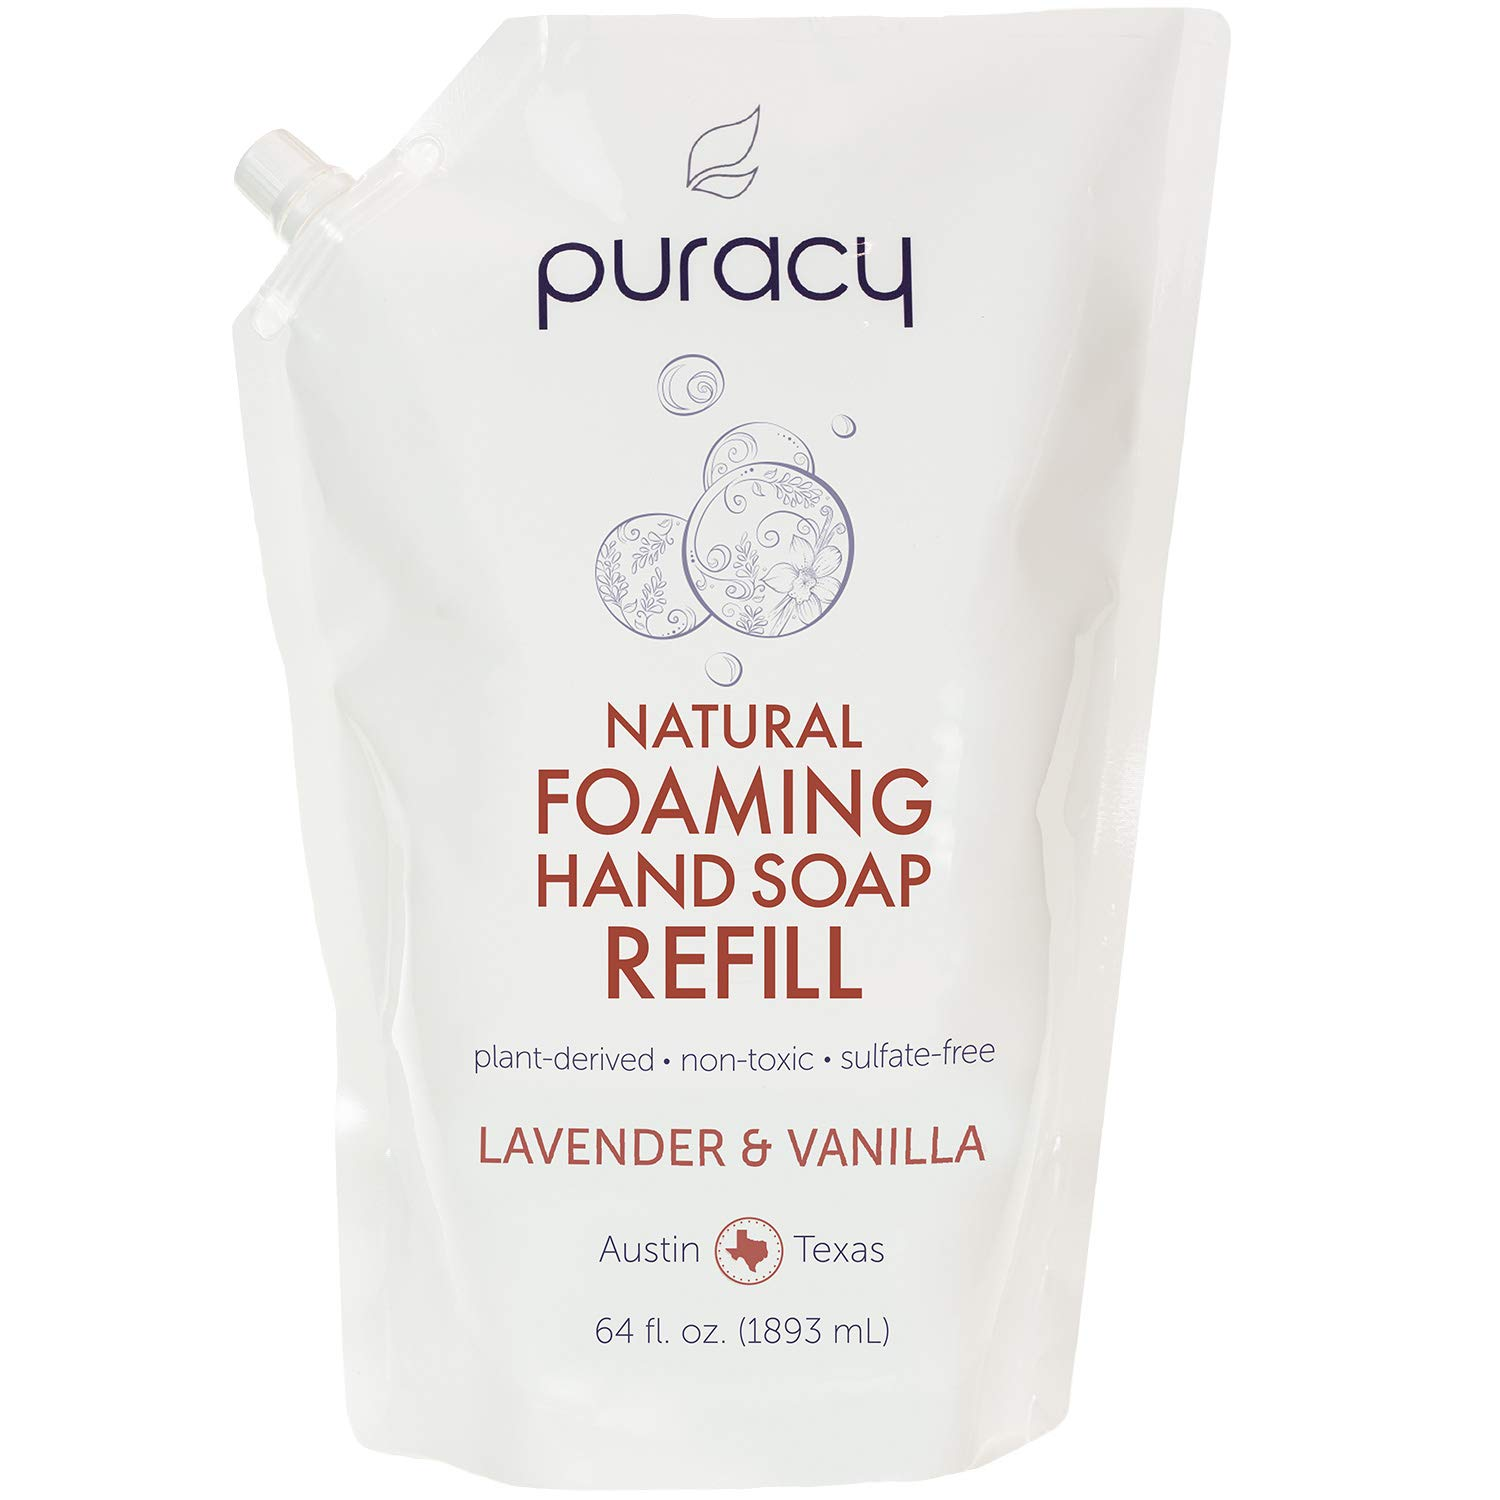 Puracy Sulfate-free Moisturizing Natural Foaming Hand Soap, Lavender and Vanilla, 1893ml Refill Pouch PFHS